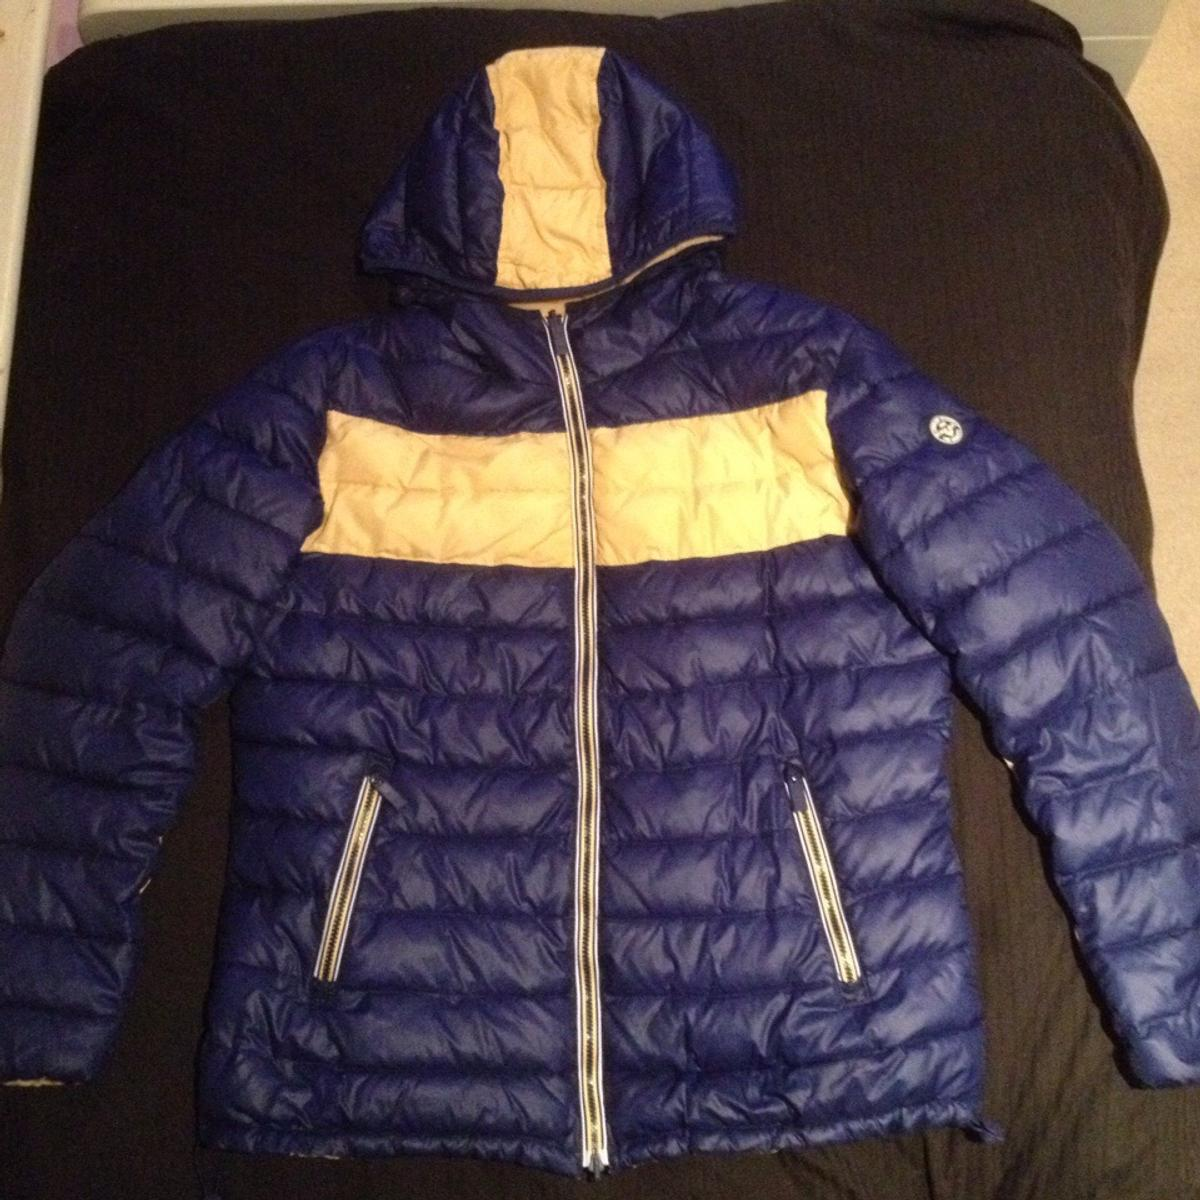 46062992 Armani Jeans Reversible Down jacket(Men's) in M27 Salford for ...